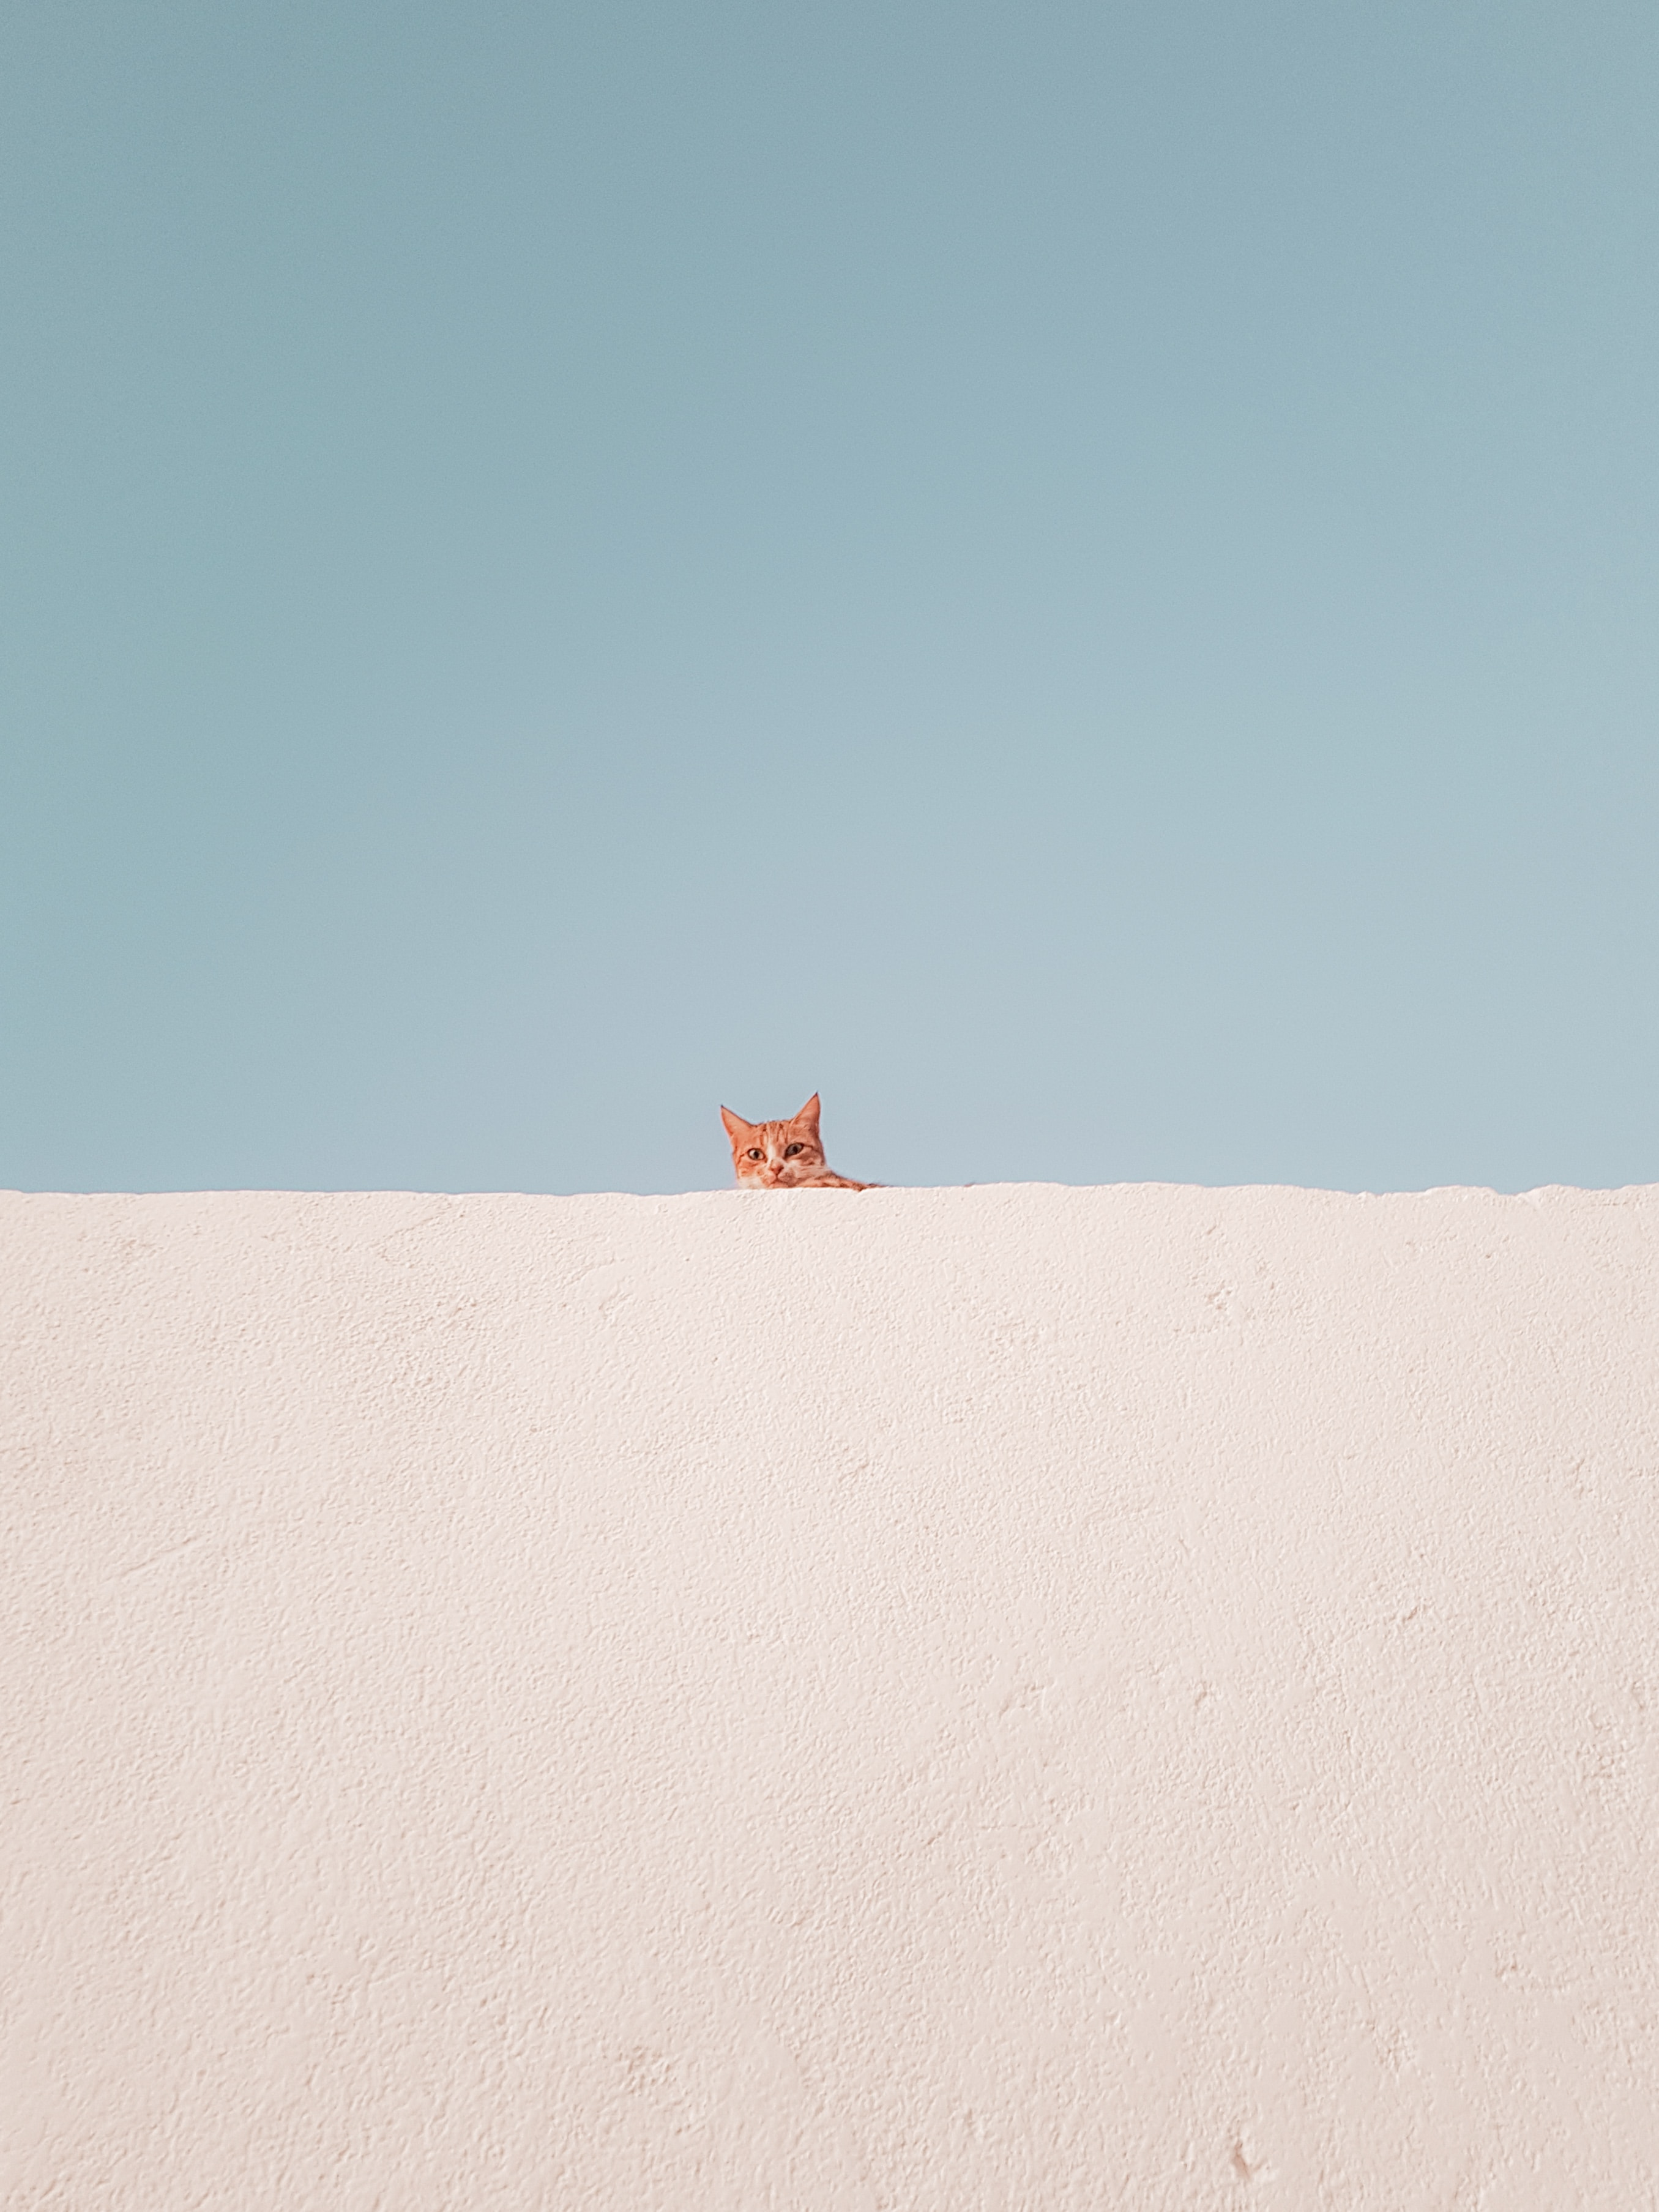 Download mobile wallpaper Peek Out, Look Out, Cat, Minimalism, Wall, Funny for free.